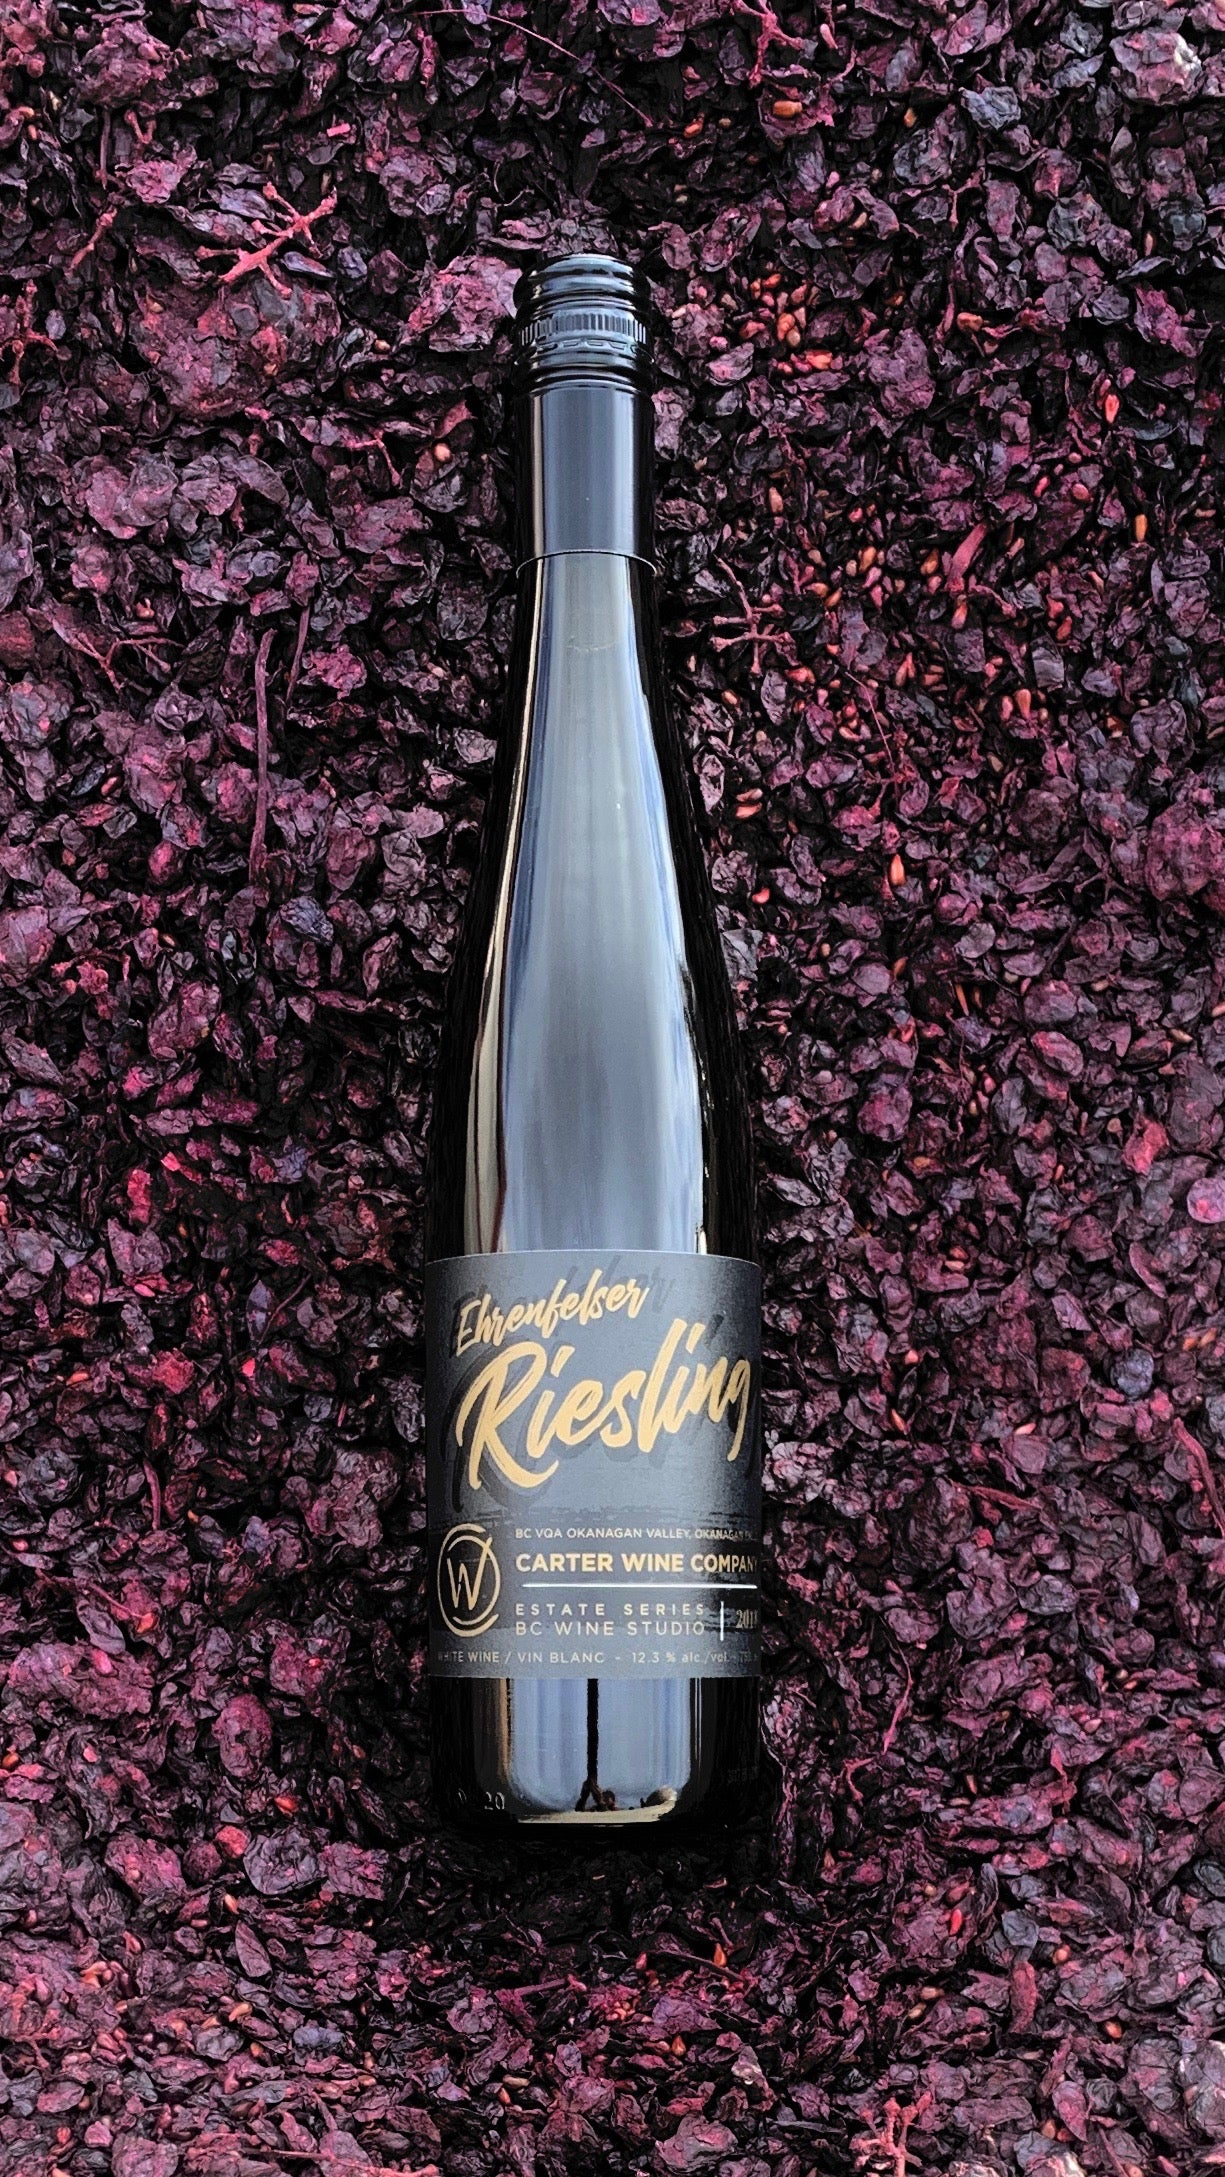 Carter Wine Company Estate Series Ehrenfelser Riesling 2018